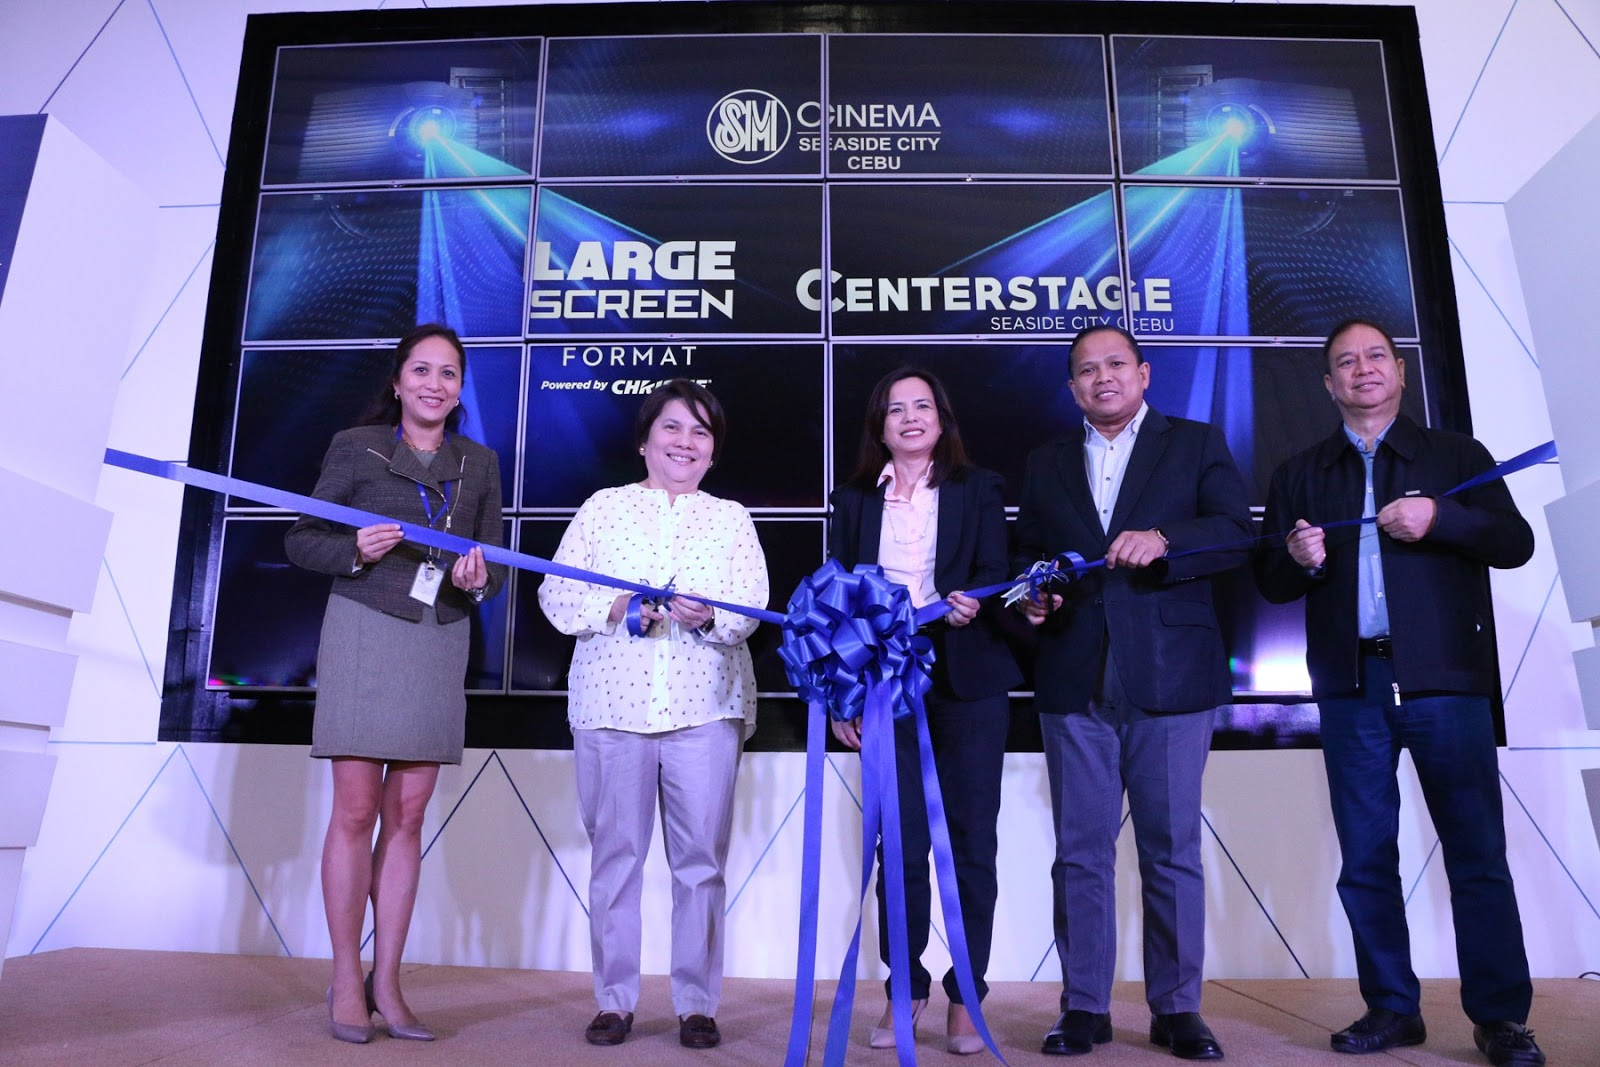 First Laser Projection System in South East Asia opens at SM Cinema Seaside City Cebu